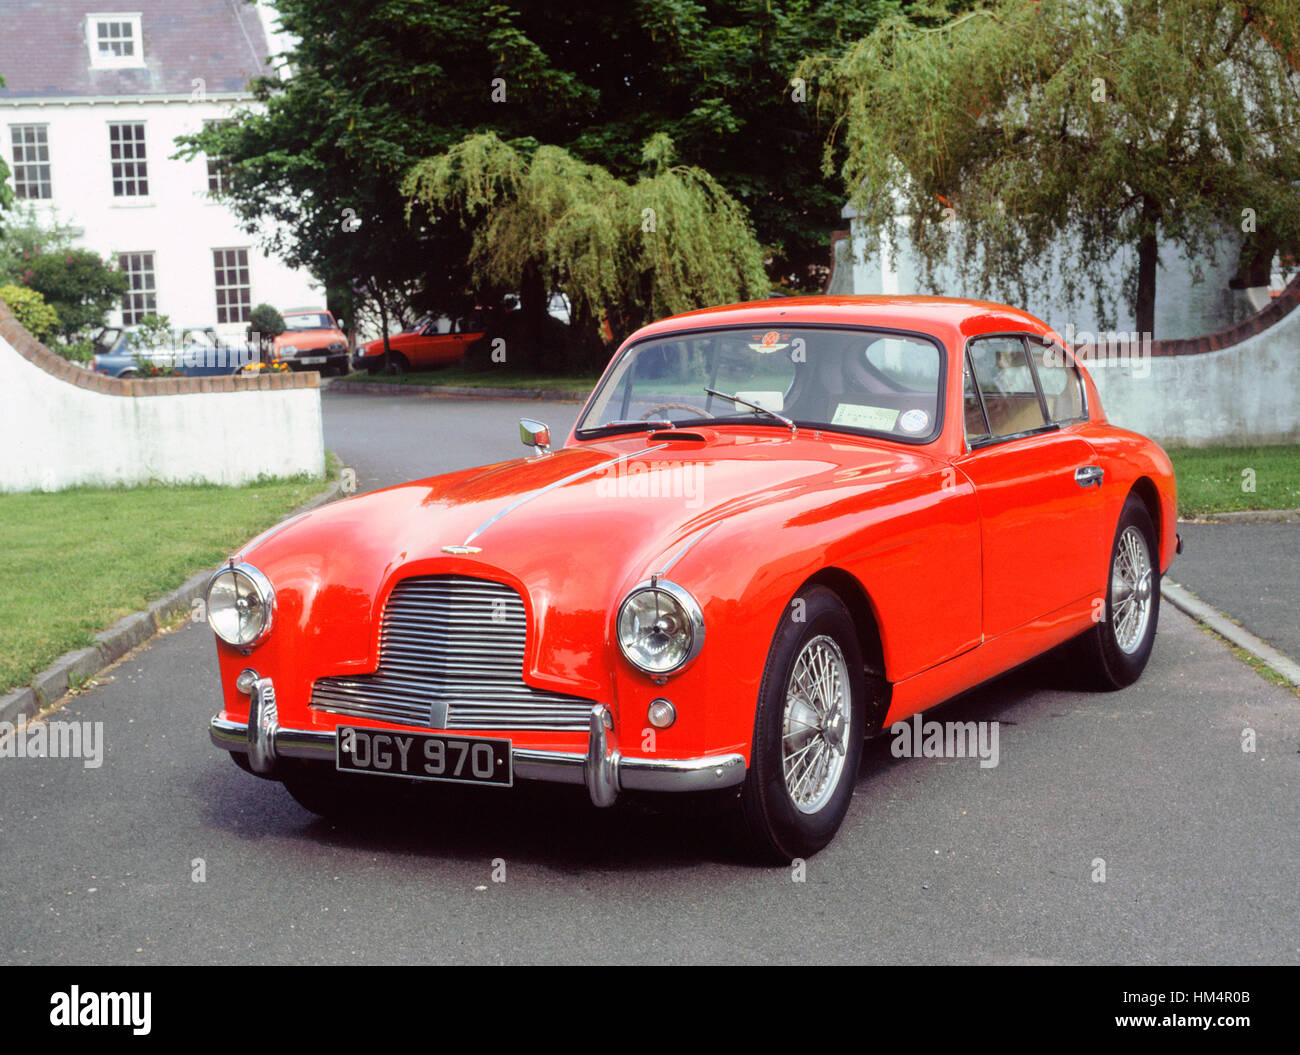 1953 Aston Martin DB2-4 - Stock Image